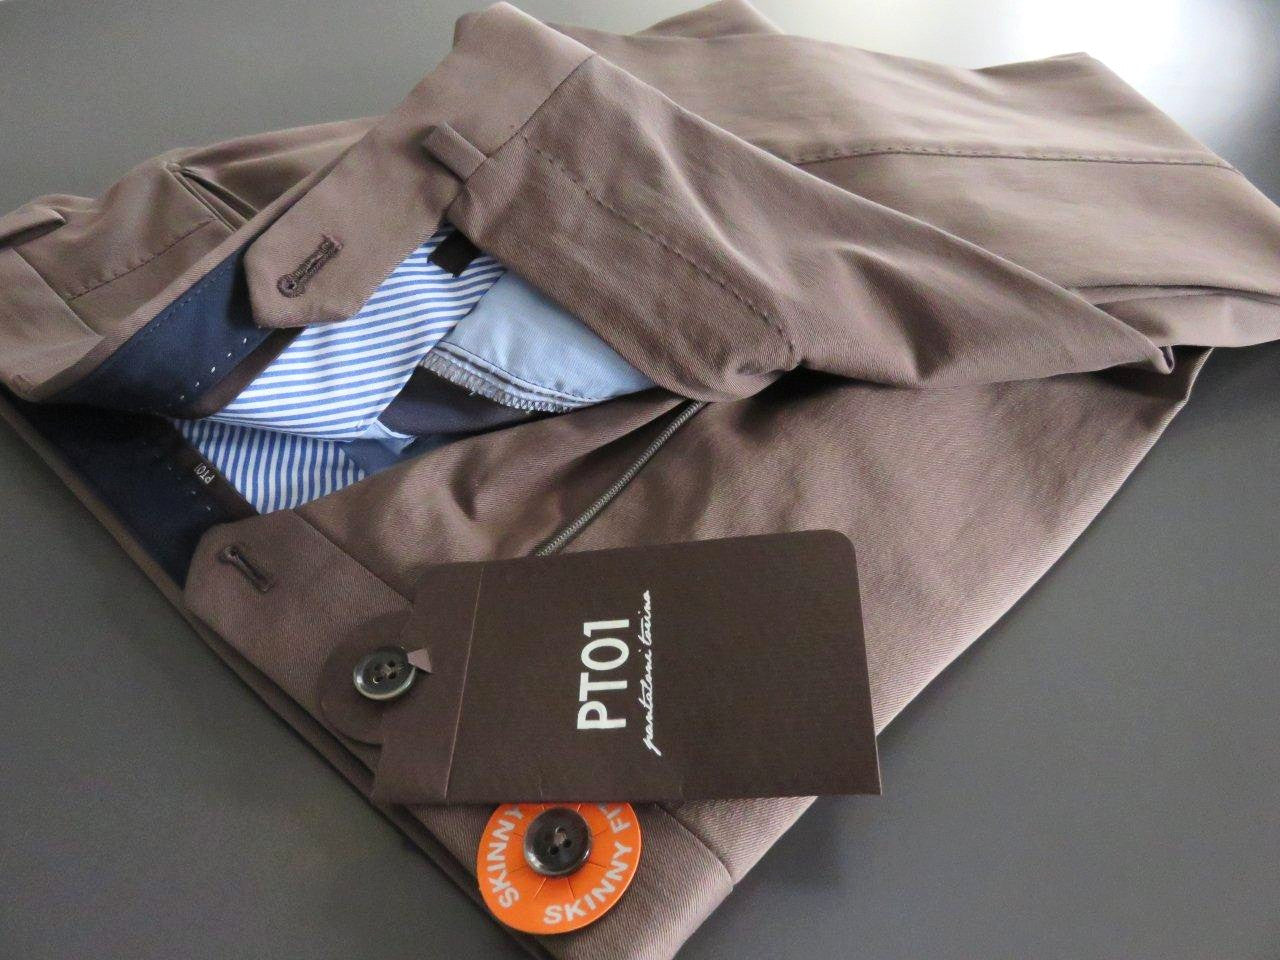 PT01 Pantaloni Torino - Business luxury cotton - Cappuccino